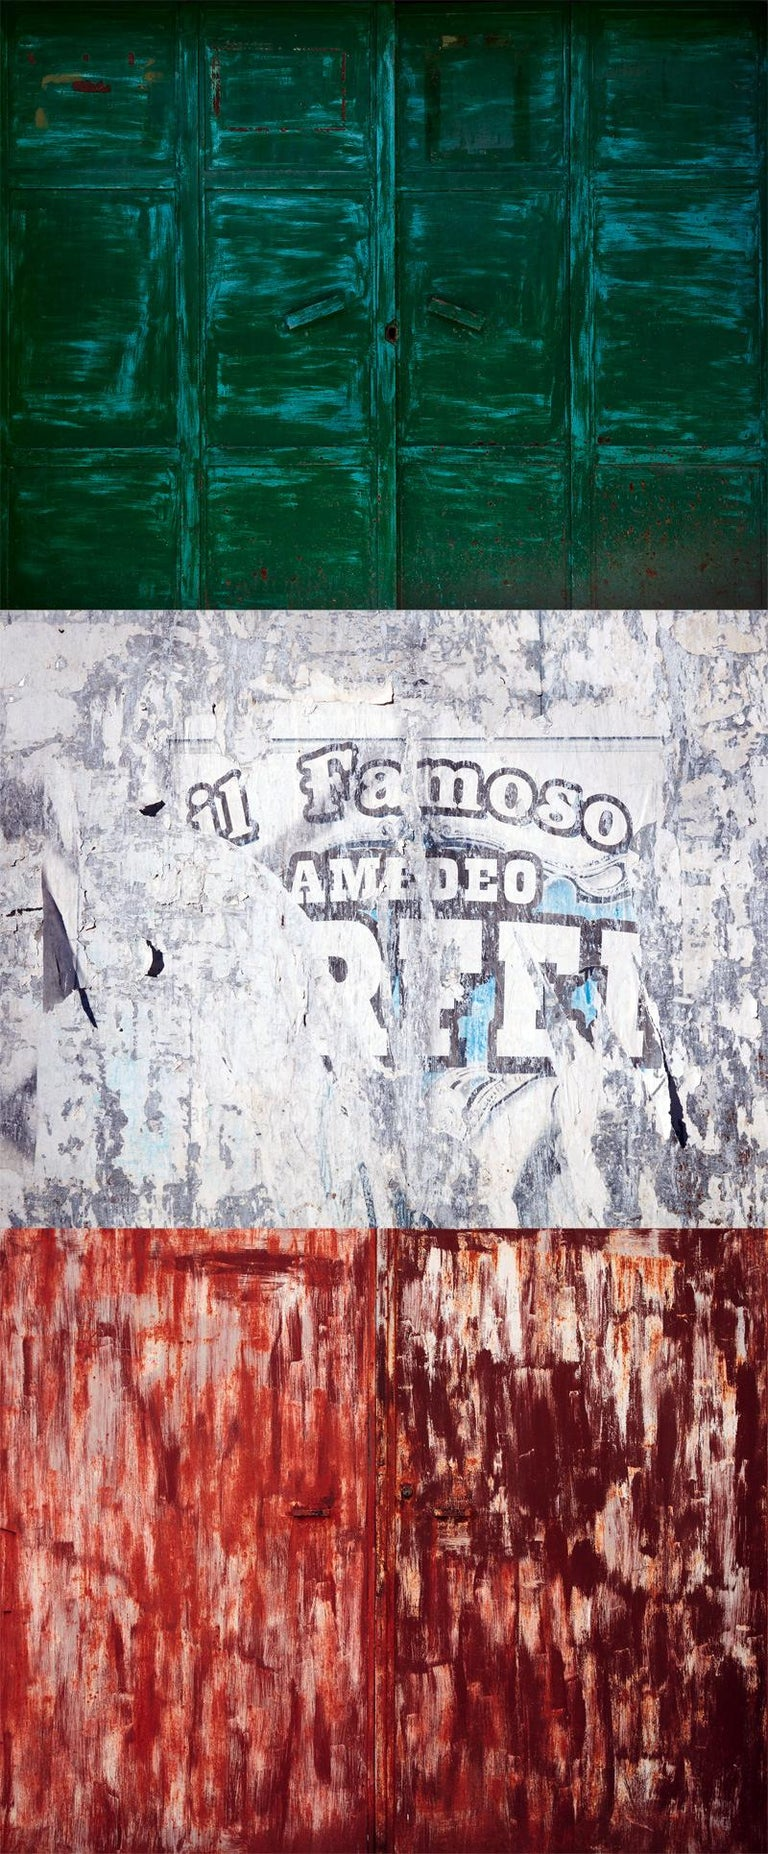 Frank Schott Color Photograph - Tricolore (triptych) - abstraction of urban Italian color palette and textures